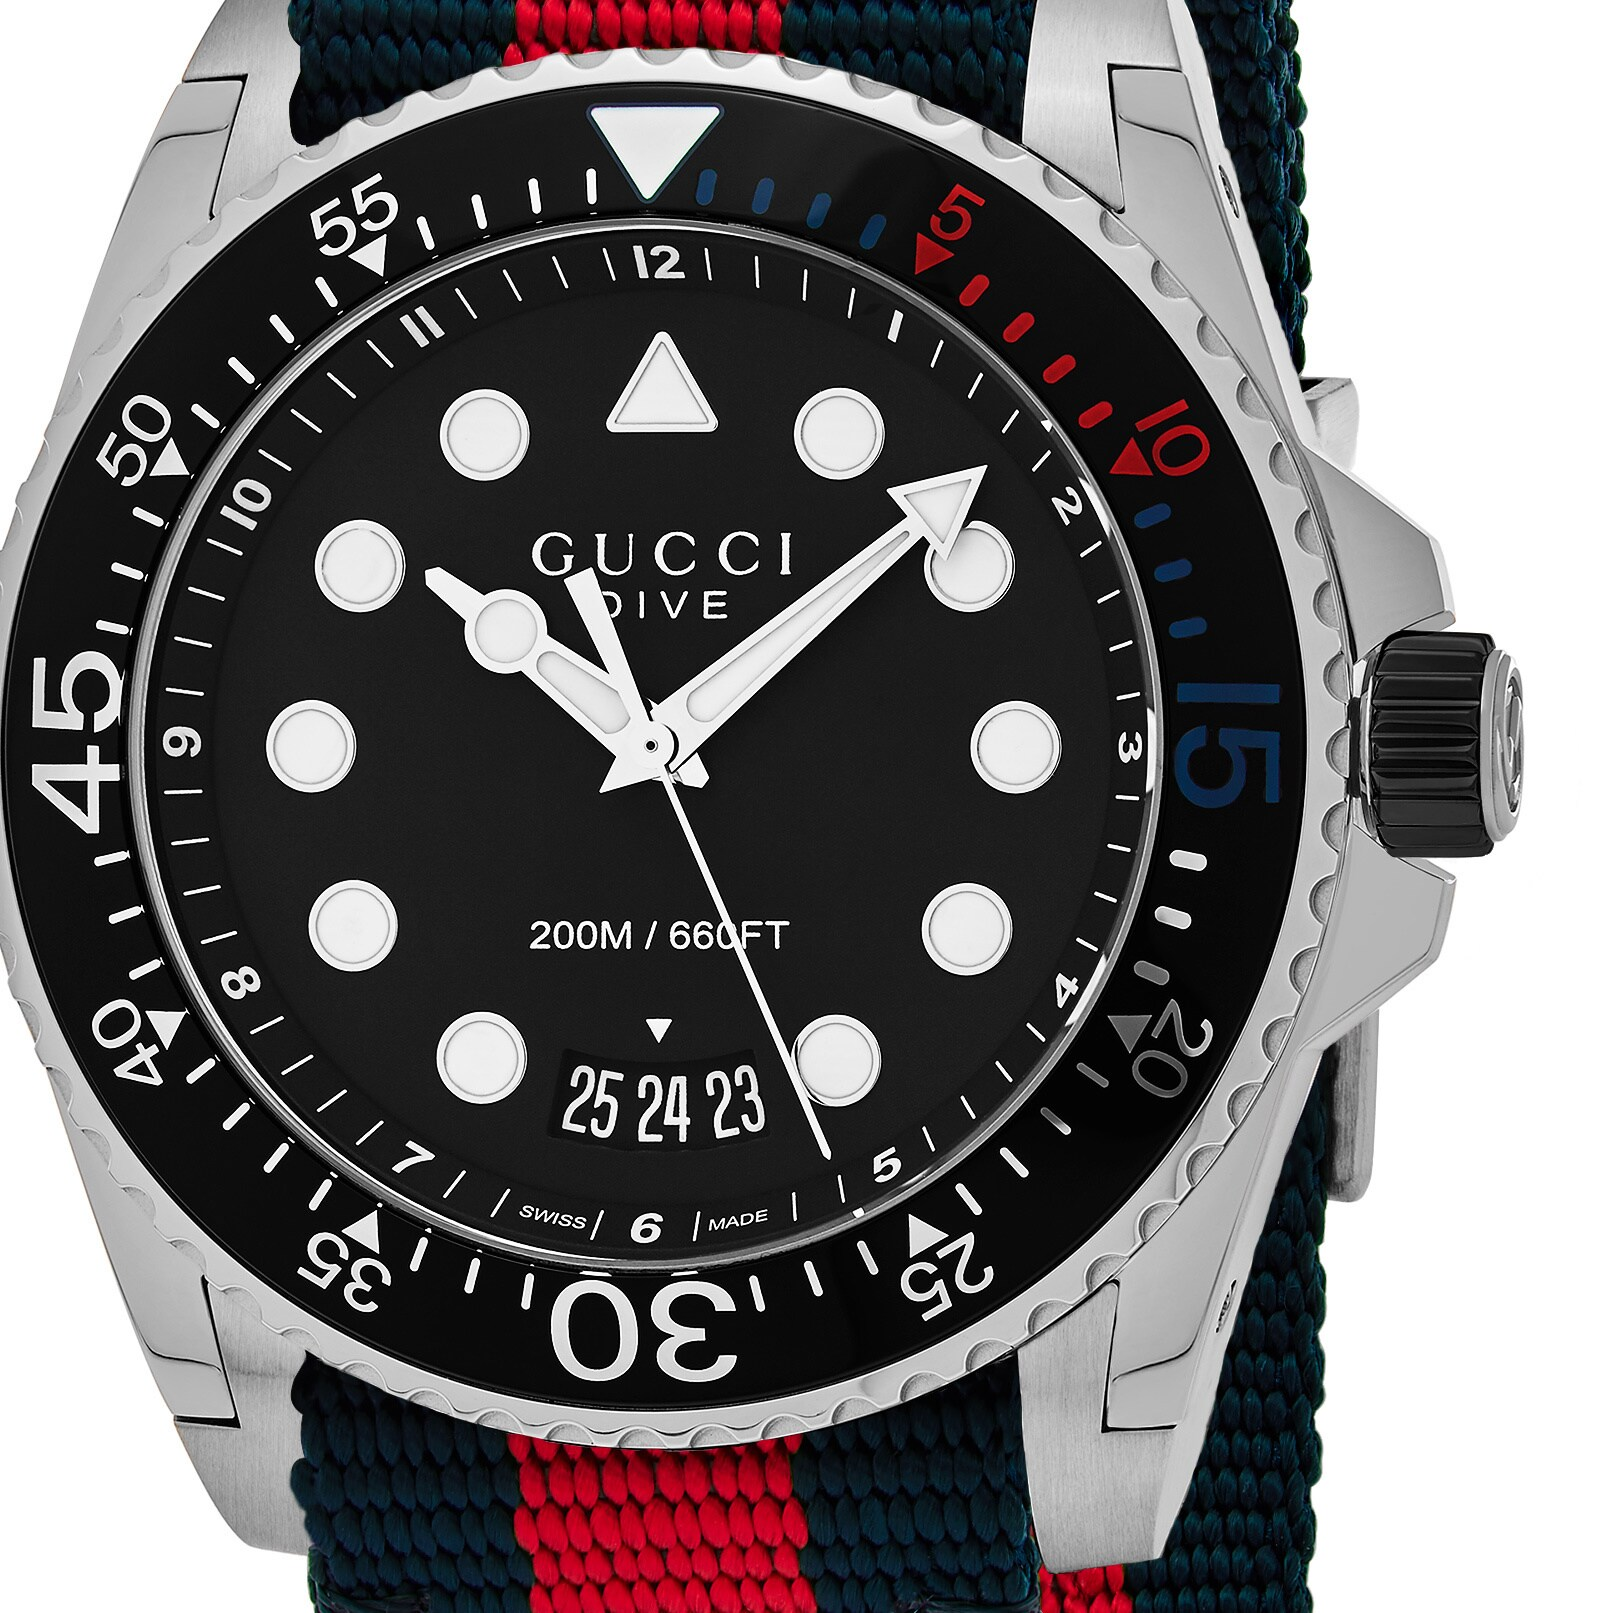 5d23900dfc6 Shop Gucci Men s  Dive  Black Dial Blue Red Nylon Strap Swiss Quartz Watch  - Free Shipping Today - Overstock - 13985817